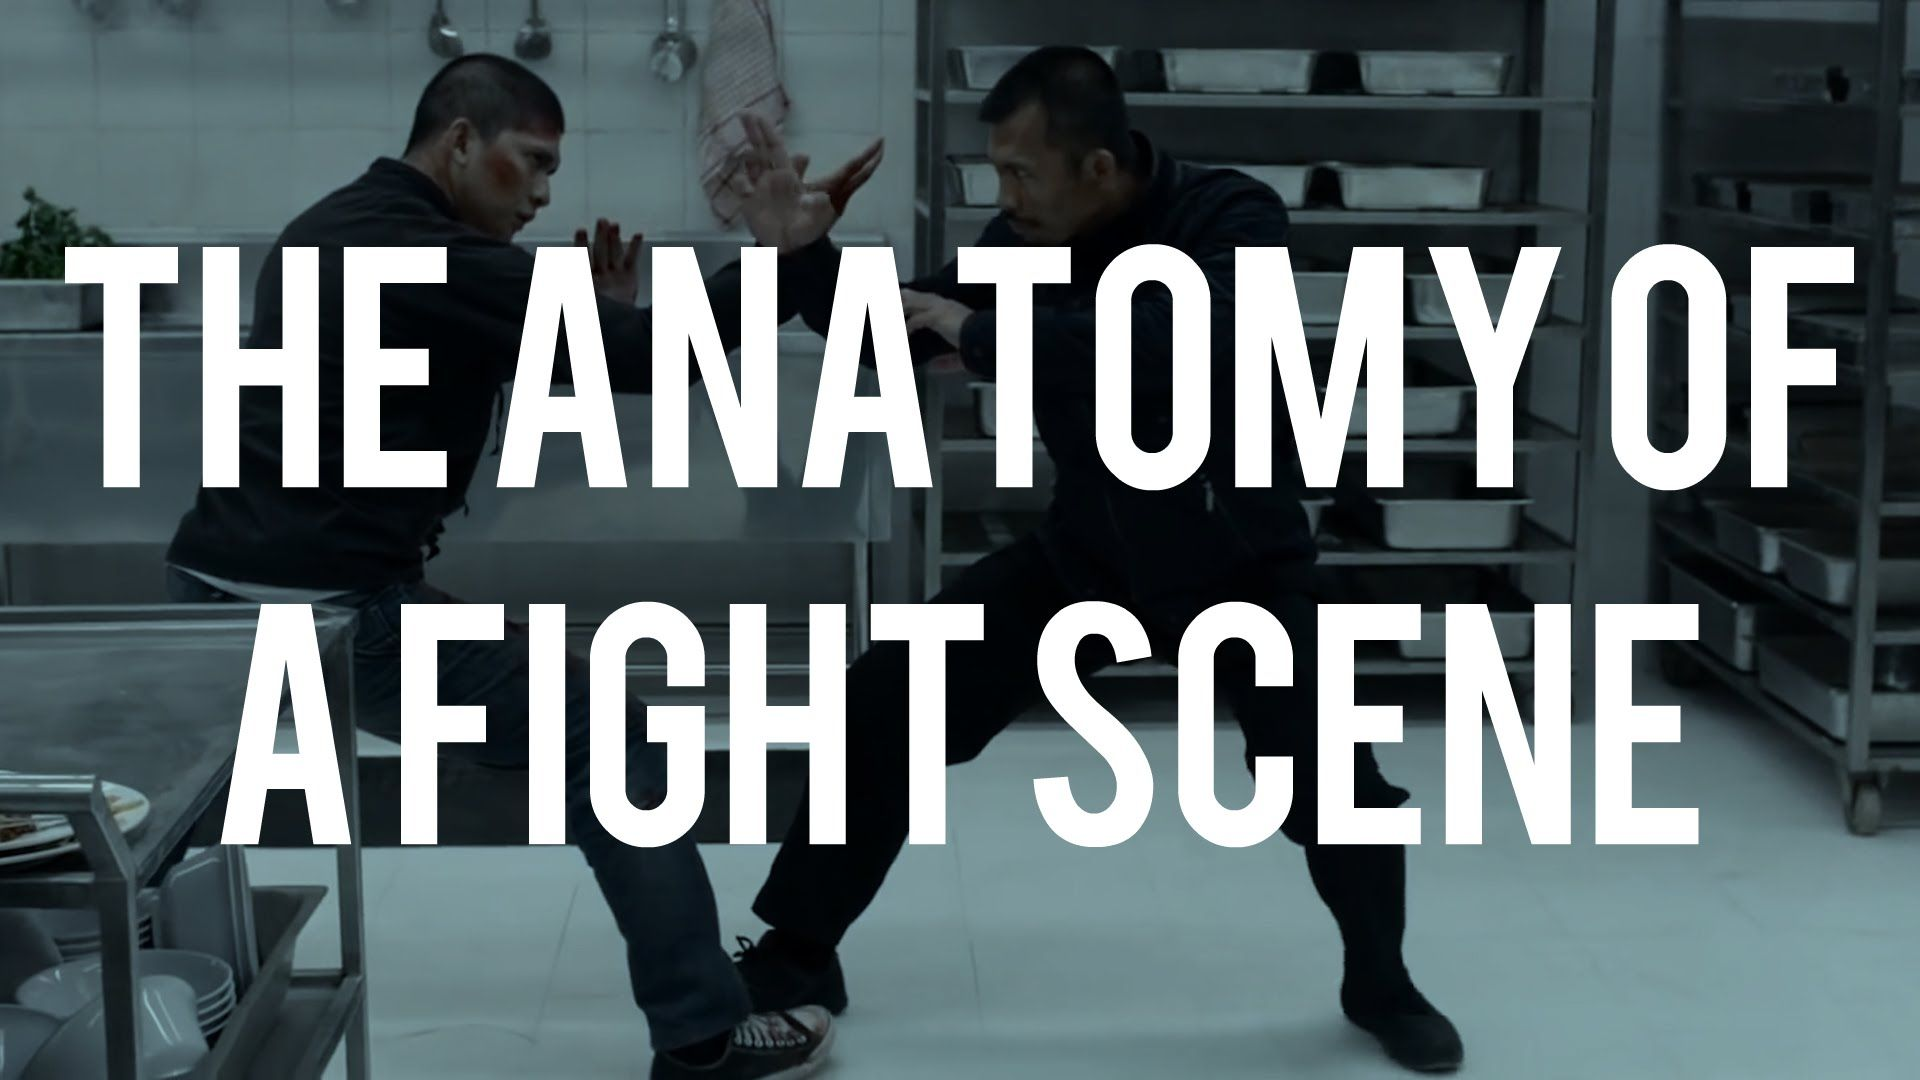 The Anatomy of a Fight Scene | Latest-movies | Pinterest | Anatomy ...